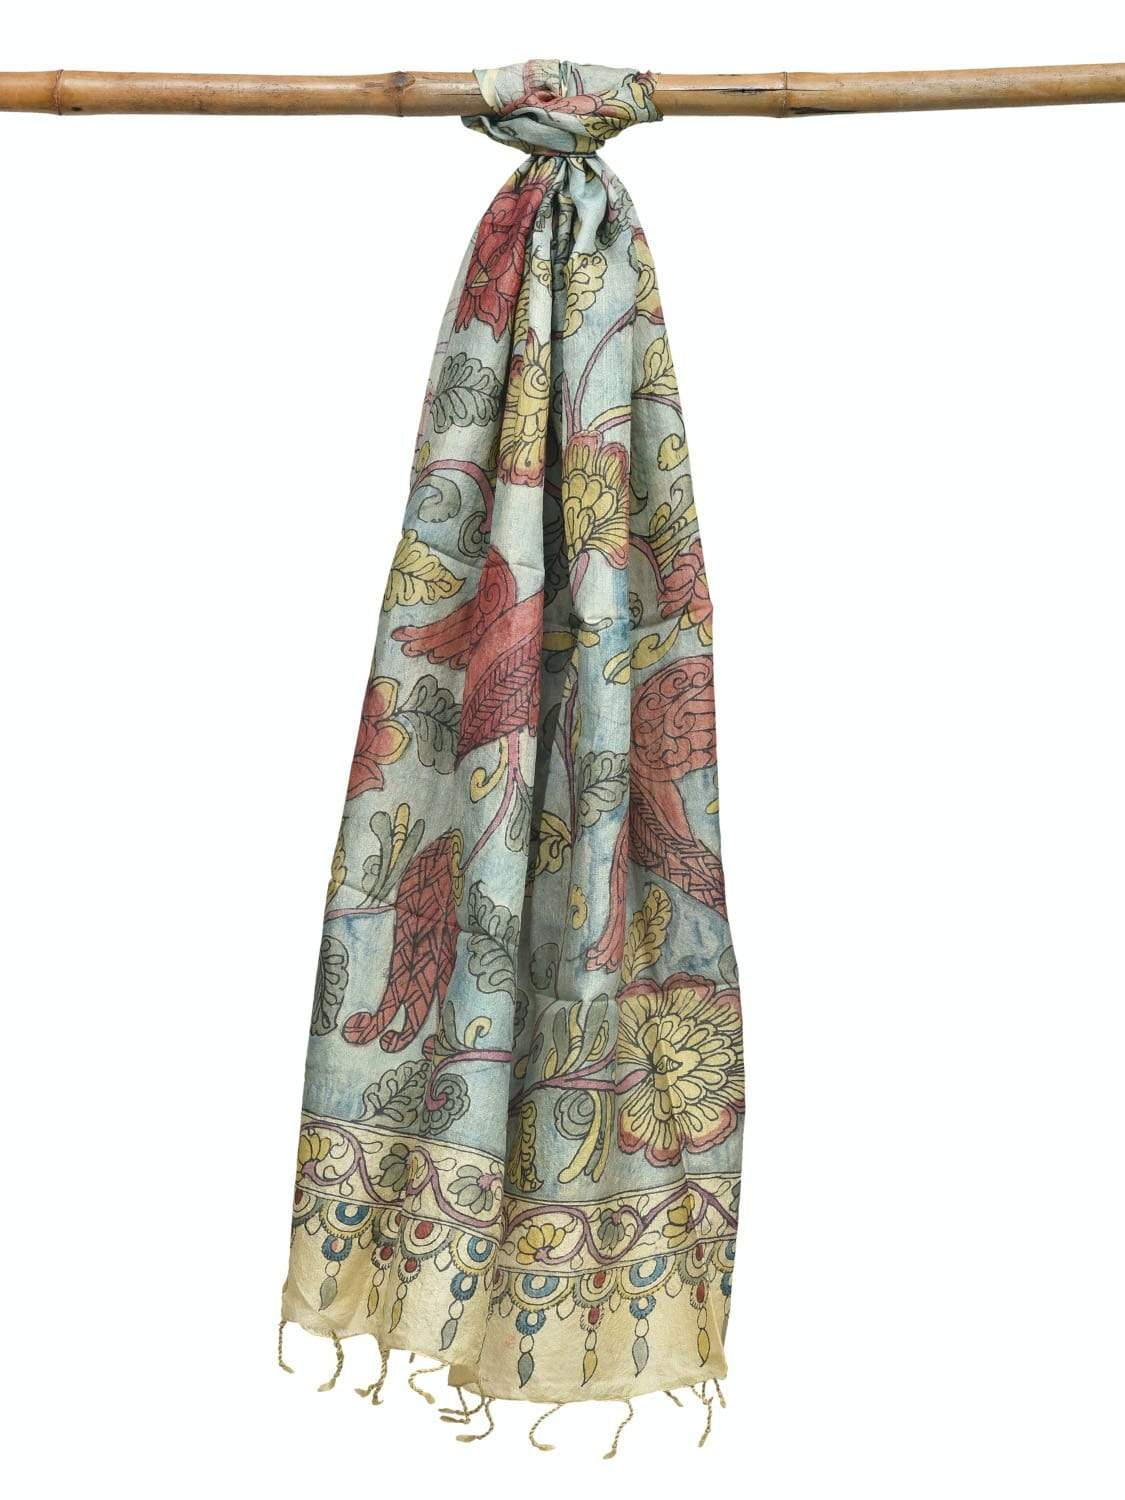 Light Blue Kalamkari Hand Painted Tussar Handloom Dupatta with Exotic Flowers and Birds Design ds1929